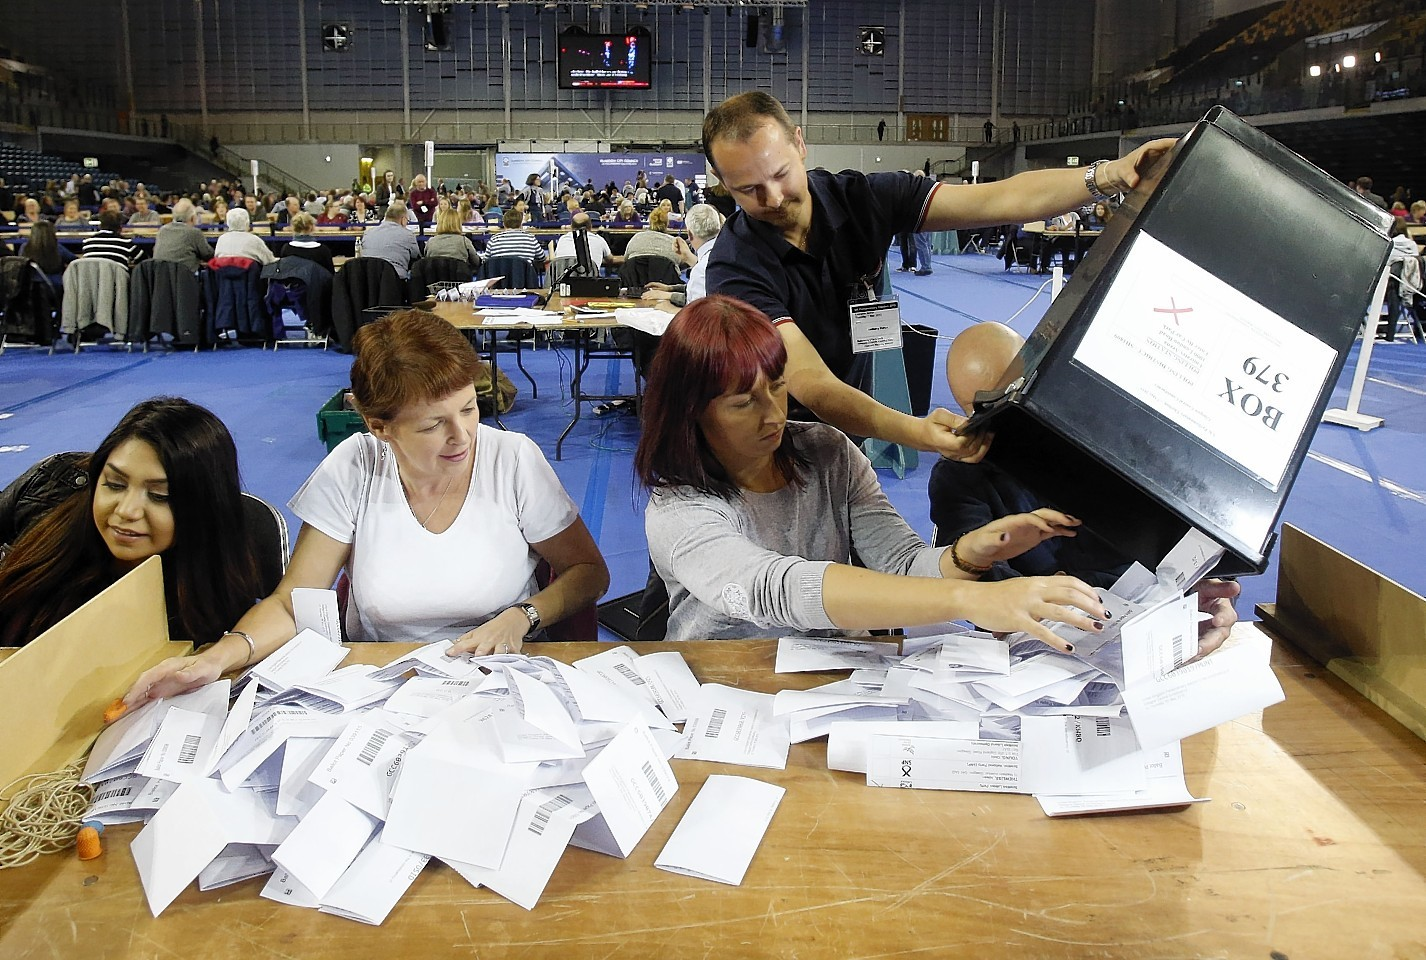 The first votes arrive at the General Election count for Glasgow